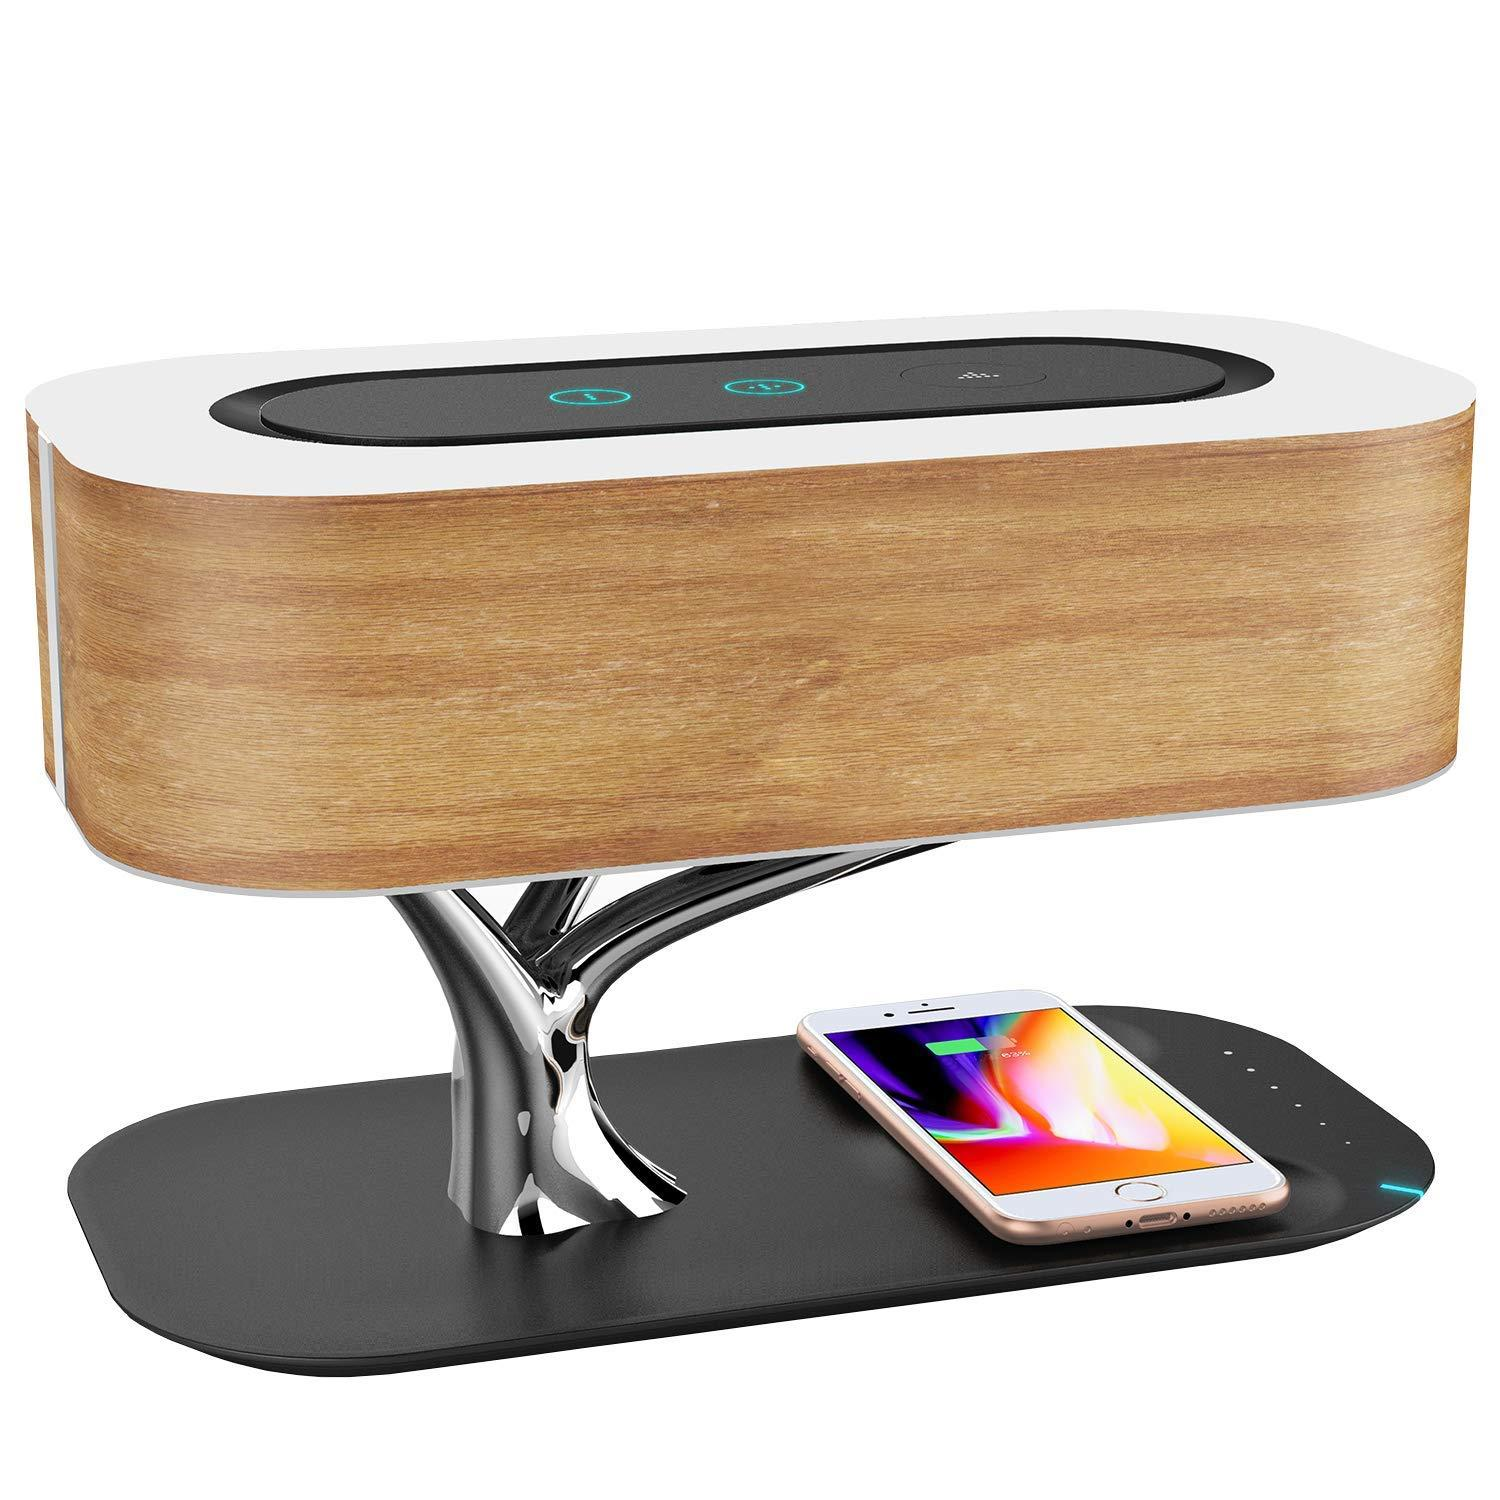 Ampulla Bedside Lamp with Bluetooth Speaker, Sleep Mode Stepless Dimming